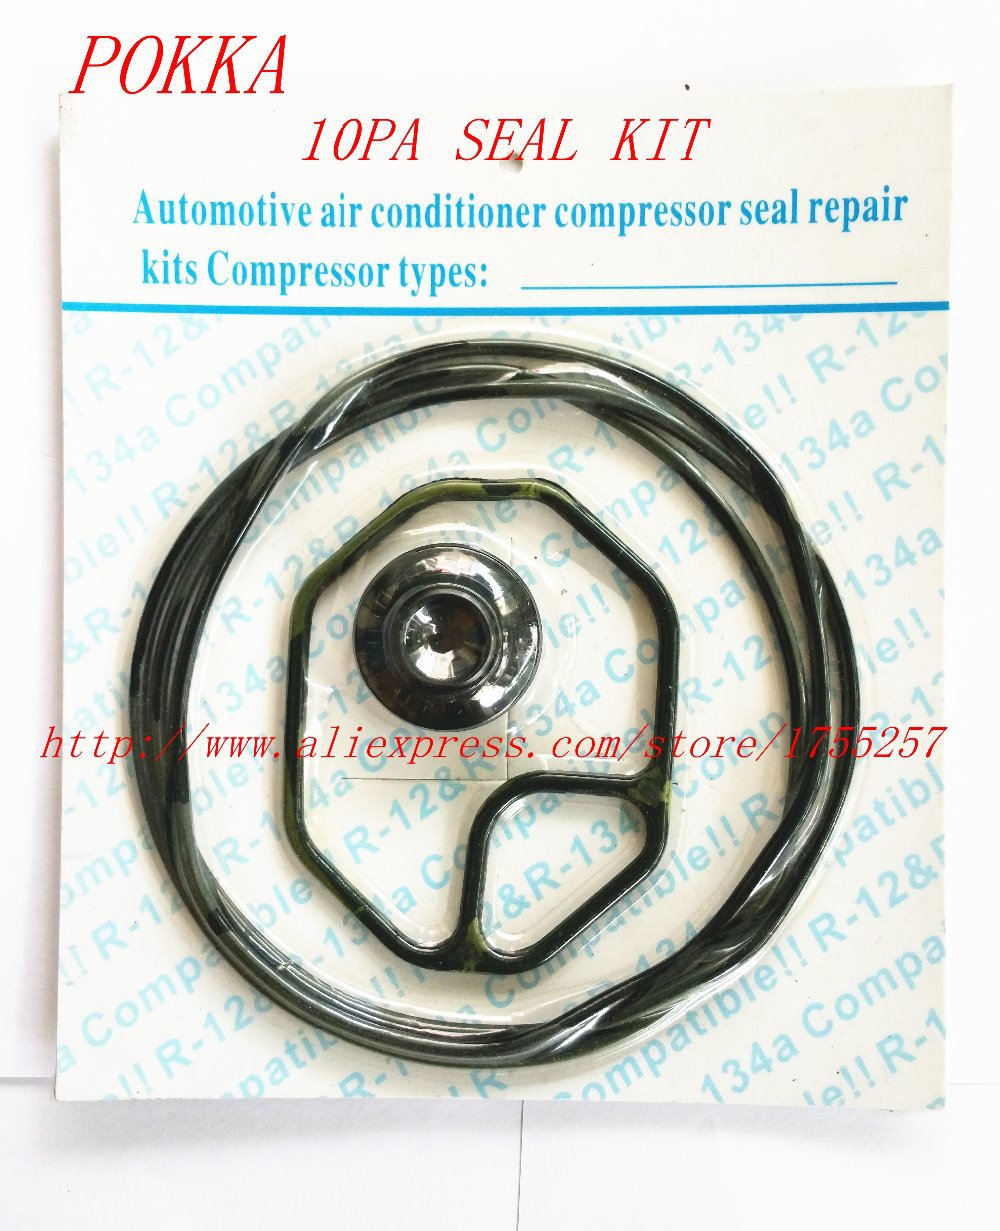 Free Shipping,Automotive air conditioning compressor seal kit for 10pa 15C 17C compressor oil seal,rubber o-ring seal 6pcs one carton automotive air conditioning compressor refrigeration oil pokka brand 4l compressor refrigeration oil